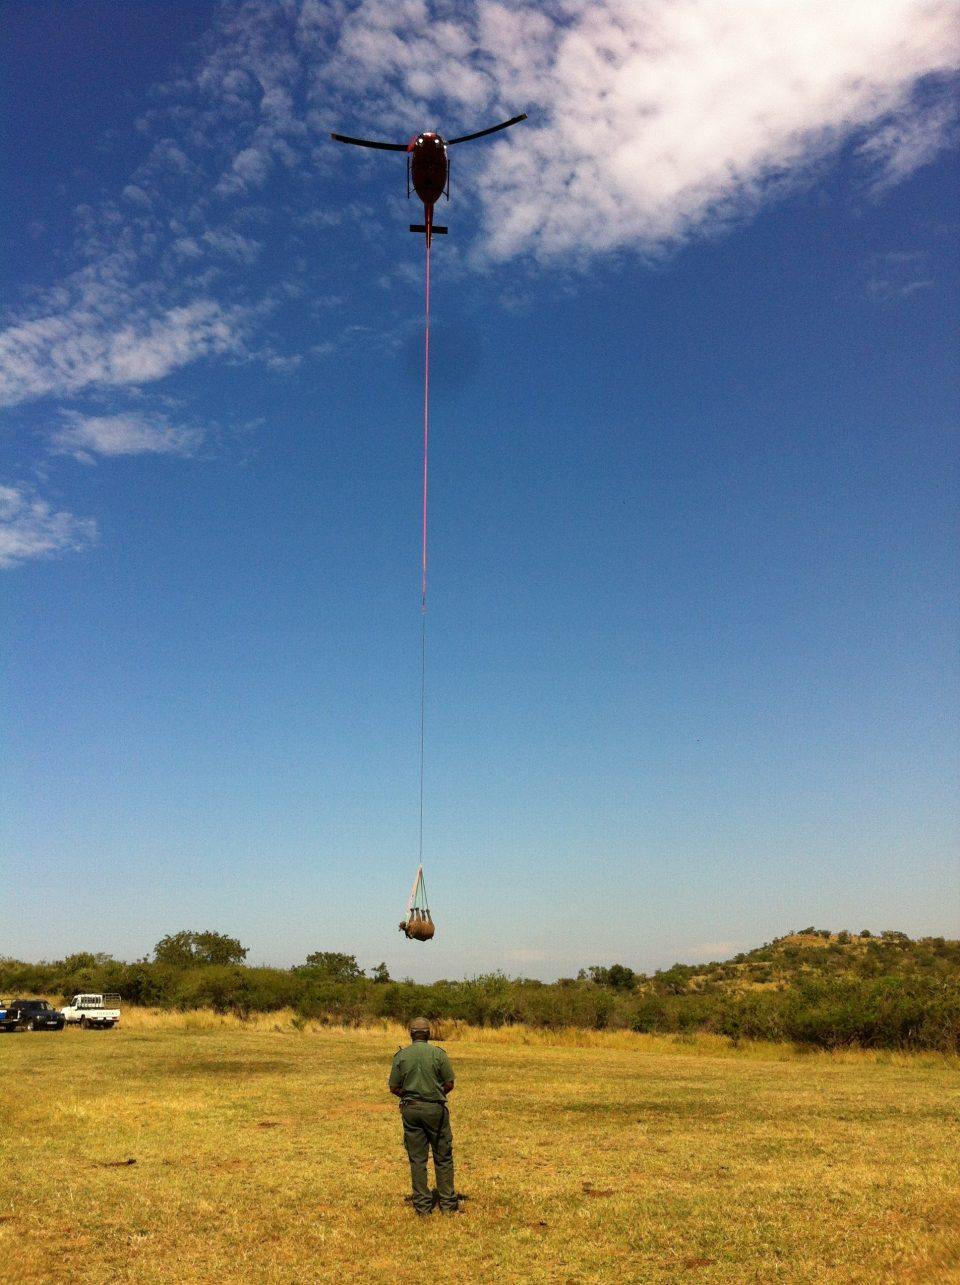 Rhino suspened from a helicopter - Rhino Airlift